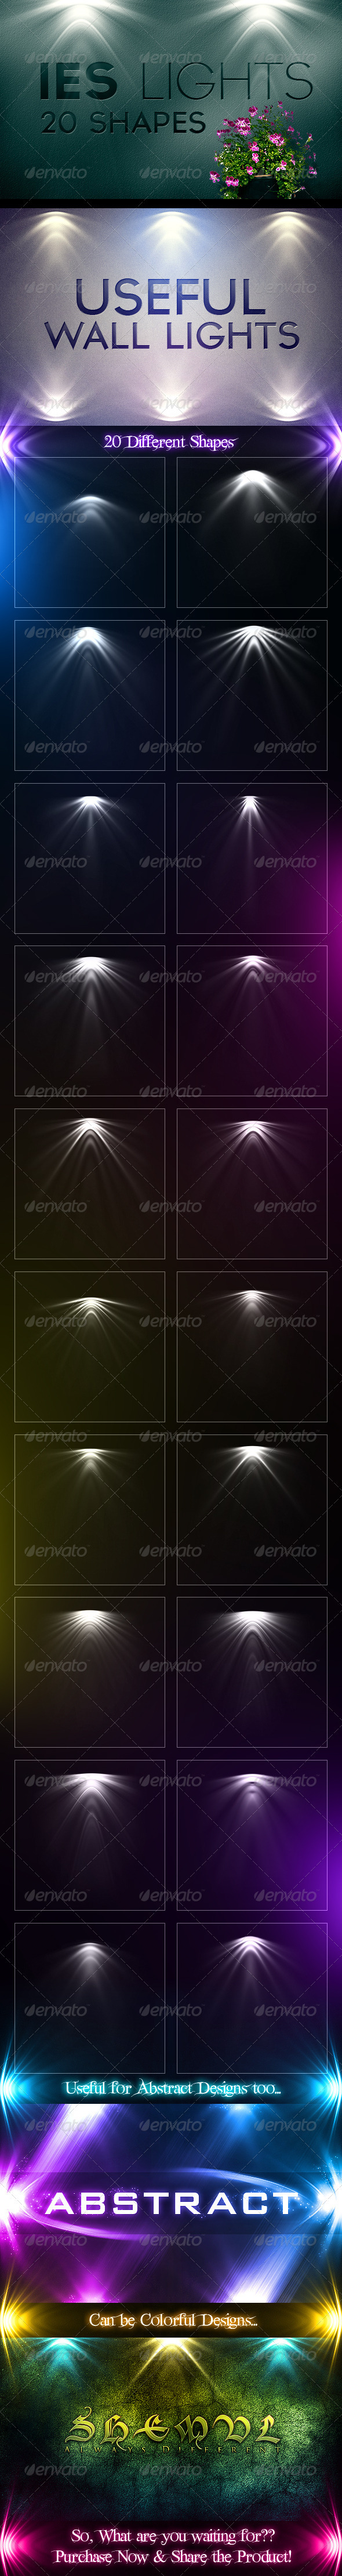 20 IES Light Effects - Miscellaneous Backgrounds